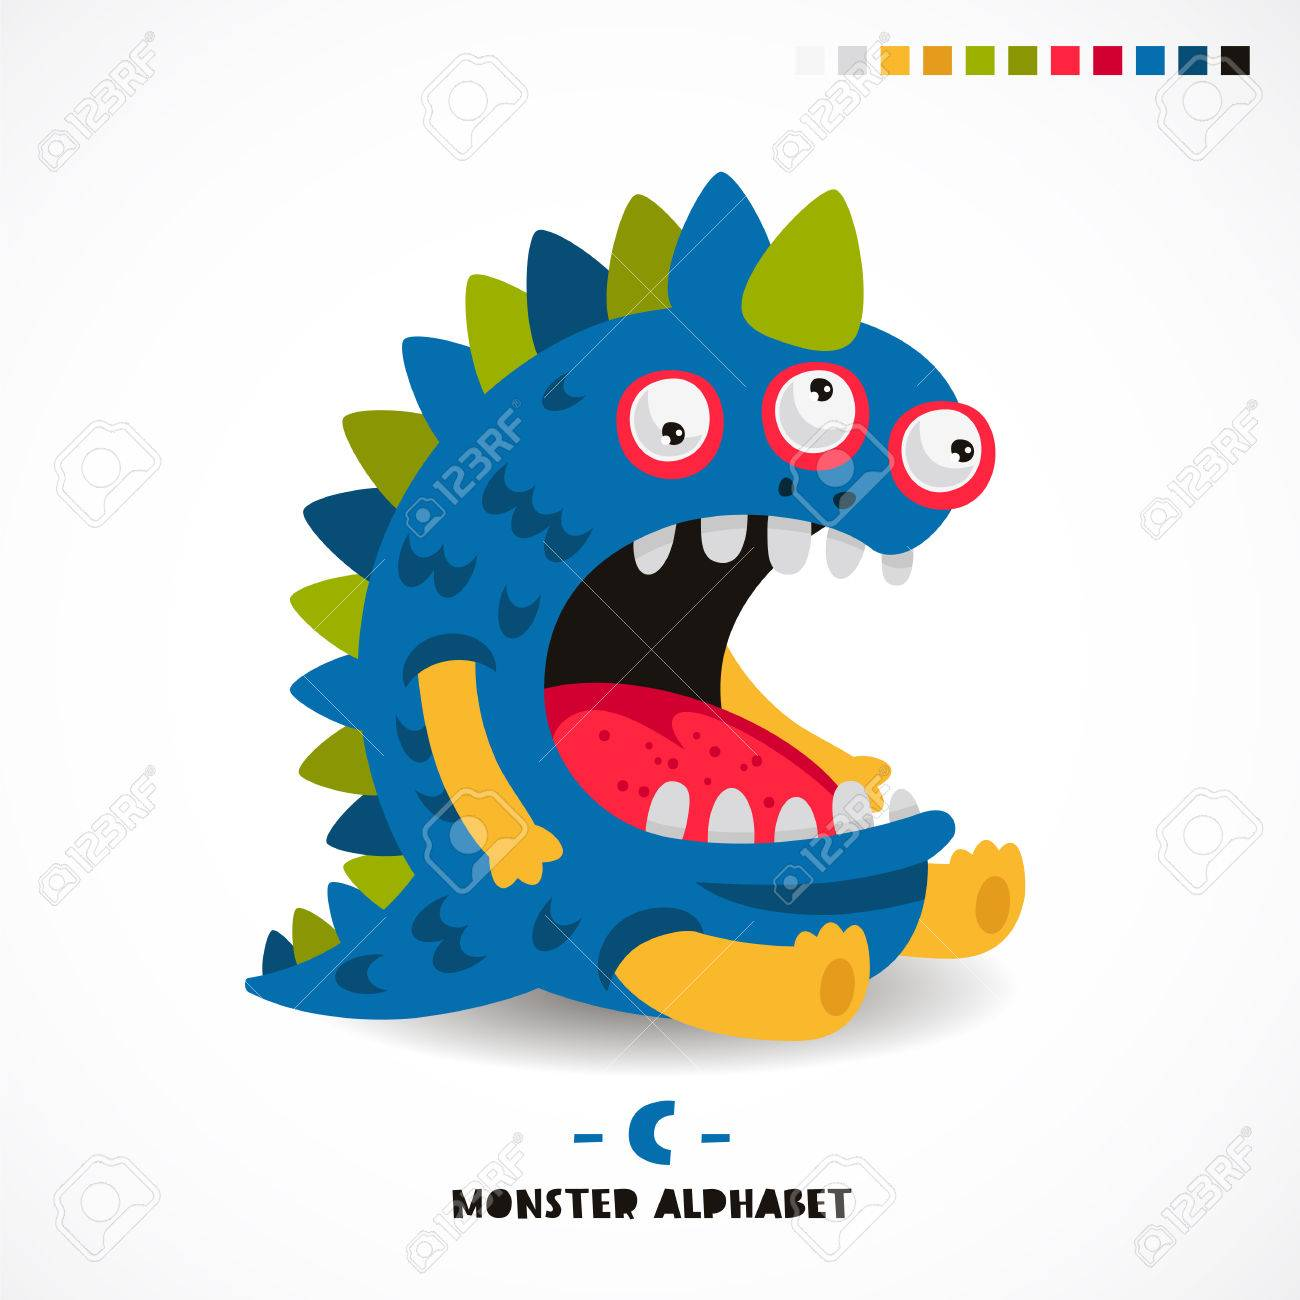 monster alphabet letter c strange animal vector illustration